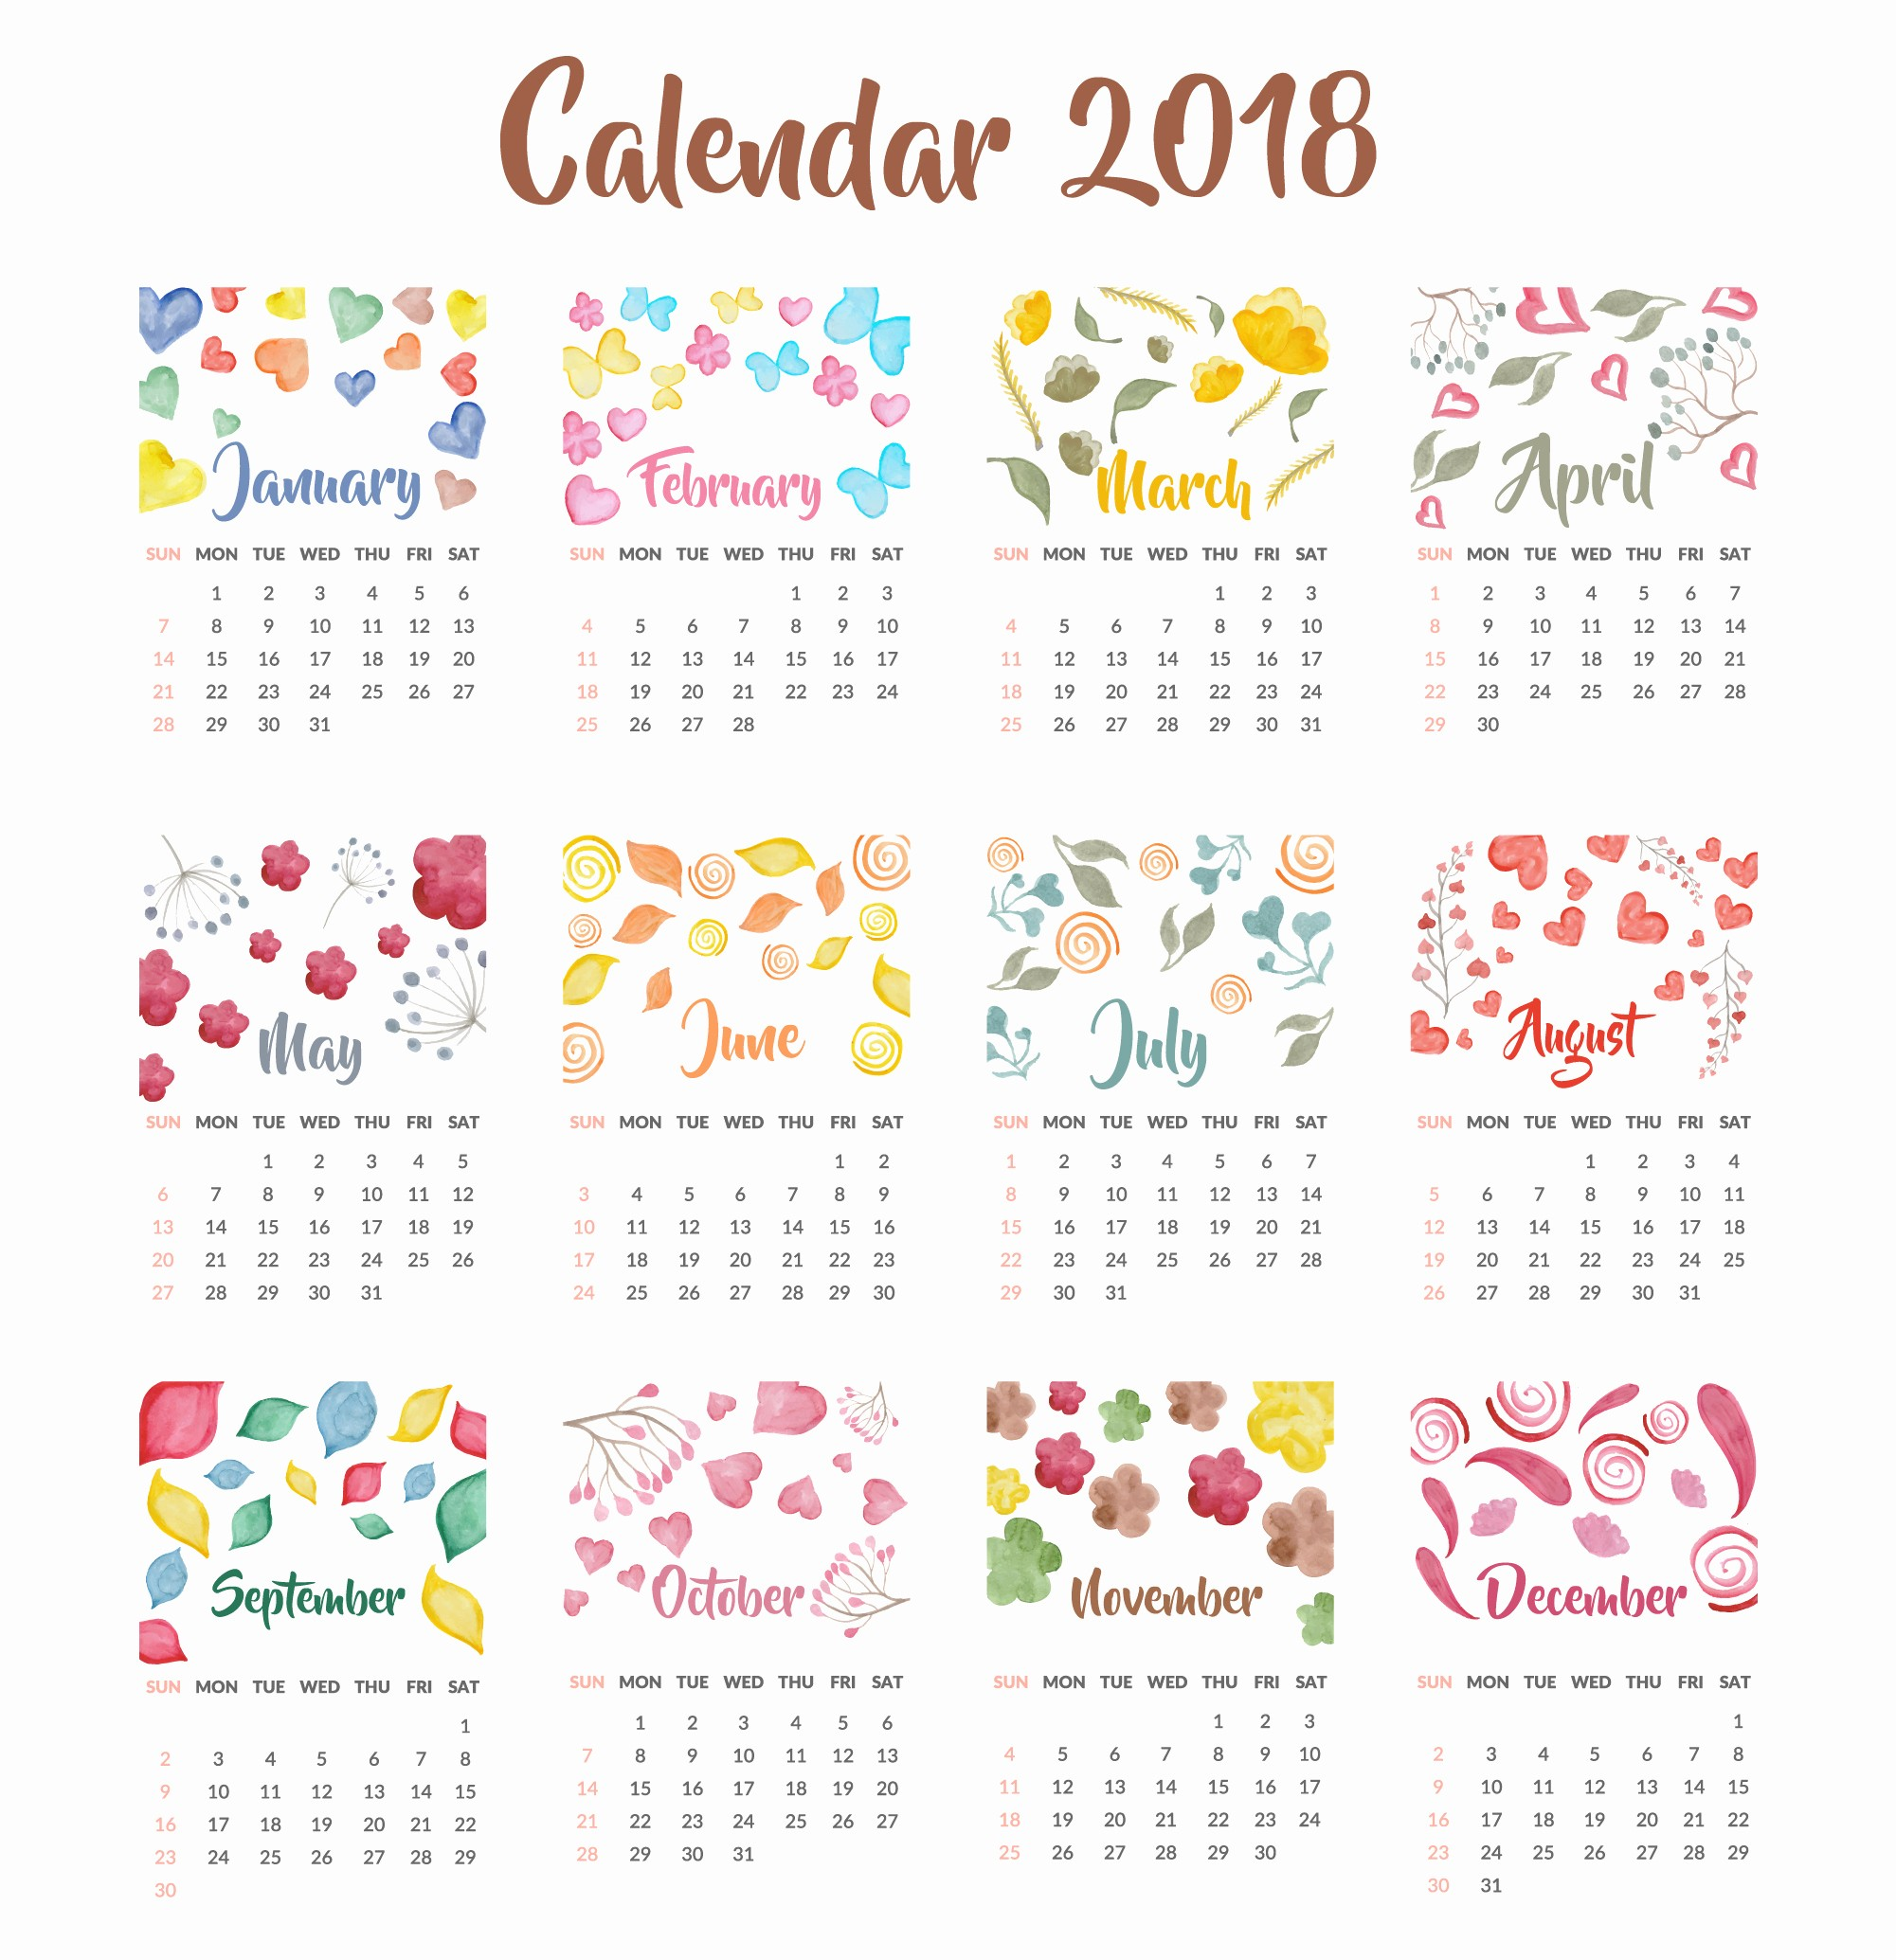 Free Printable Yearly Calendar 2018 Luxury 2018 Year Calendar Wallpaper Download Free 2018 Calendar